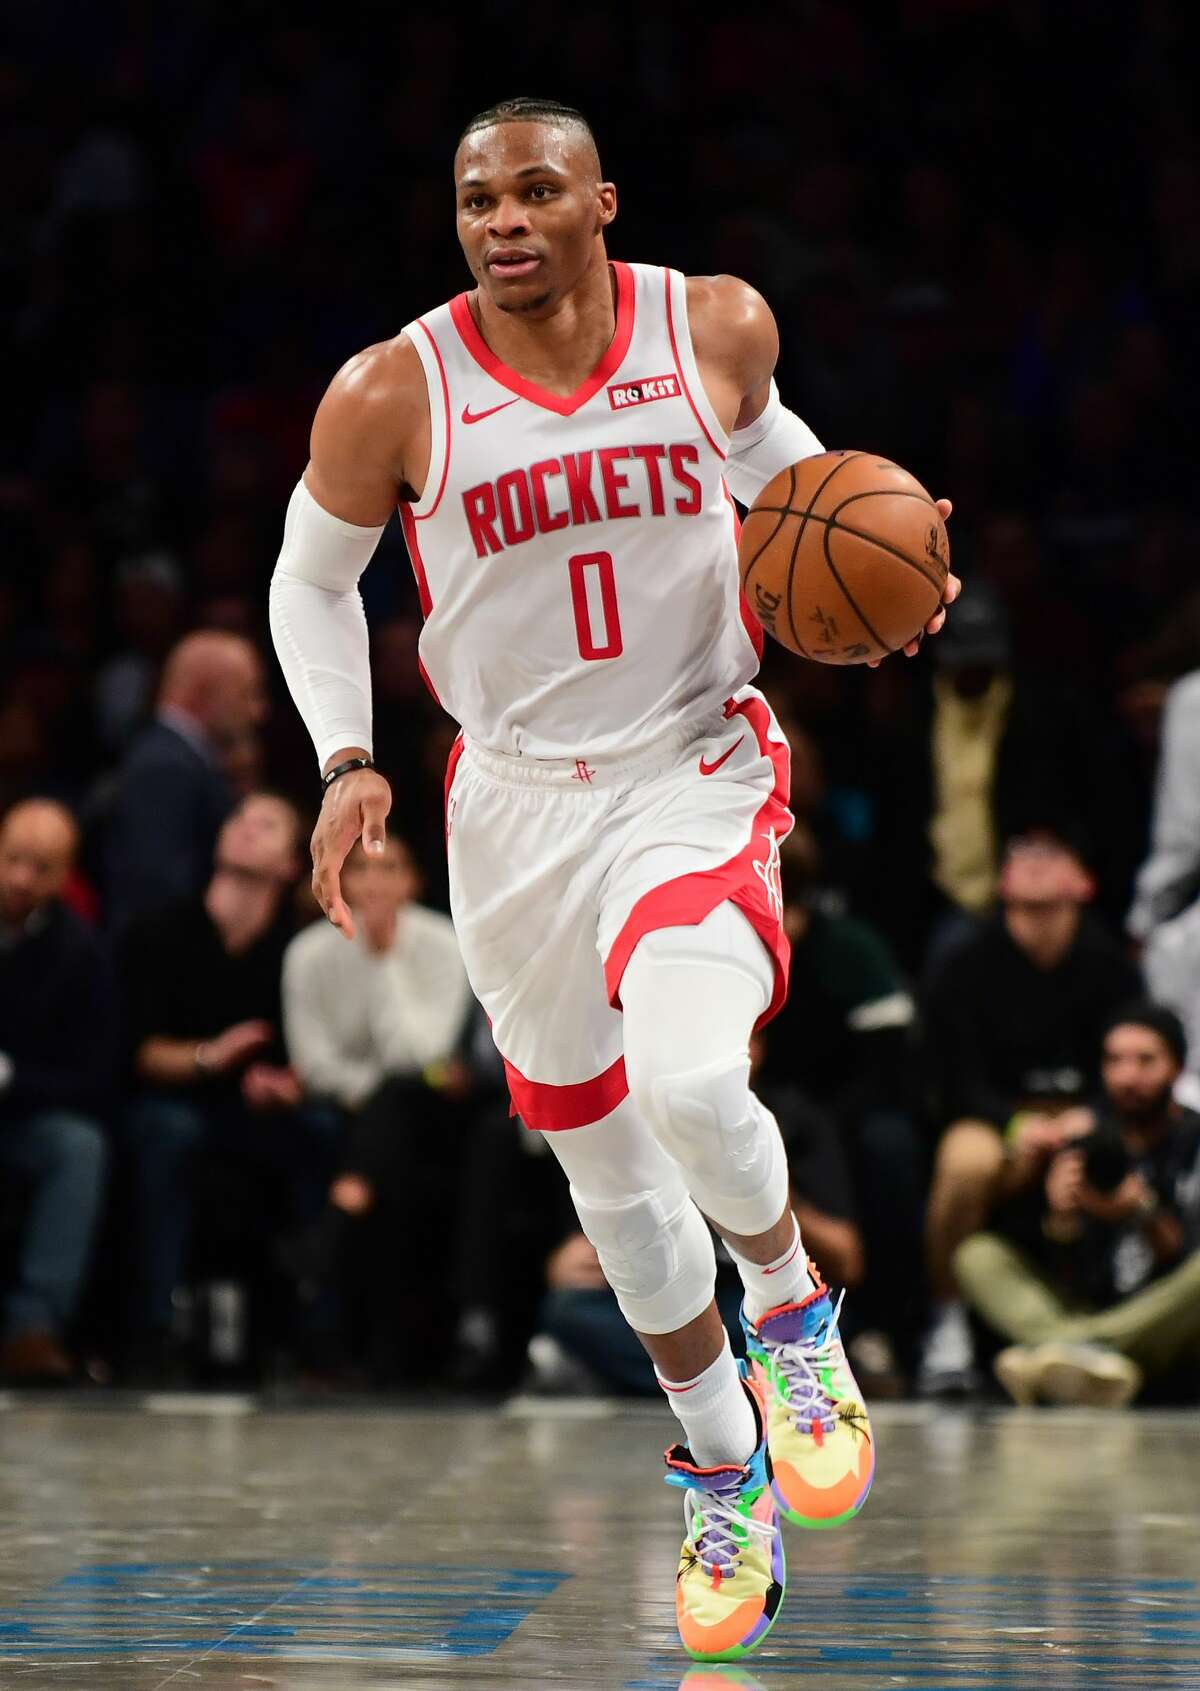 NEW YORK, NEW YORK - NOVEMBER 01: Russell Westbrook #0 of the Houston Rockets dribbles the ball down court during the first half of their game against the Brooklyn Nets at Barclays Center on November 01, 2019 in the Brooklyn borough New York City. NOTE TO USER: User expressly acknowledges and agrees that, by downloading and or using this Photograph, user is consenting to the terms and conditions of the Getty Images License Agreement. (Photo by Emilee Chinn/Getty Images)